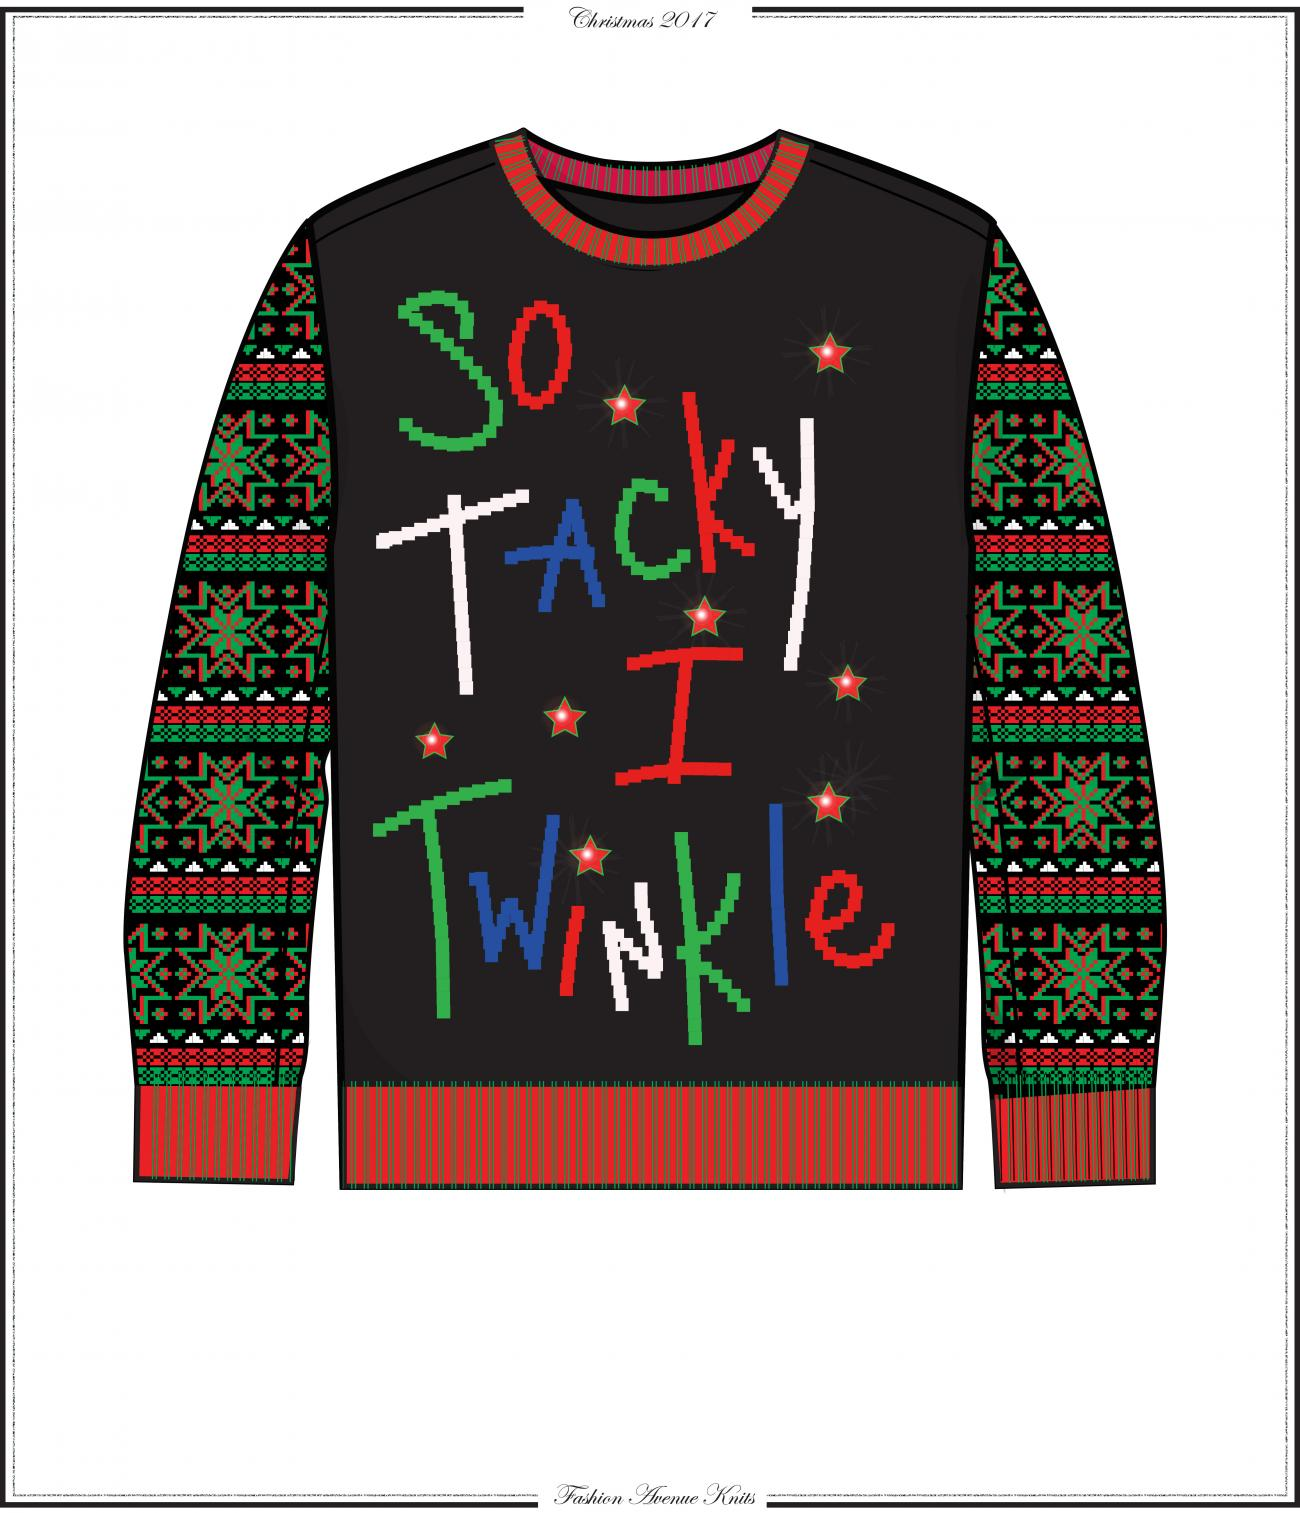 How Fashion Avenue Knits Cranks Out Ugly Christmas Sweaters With ...